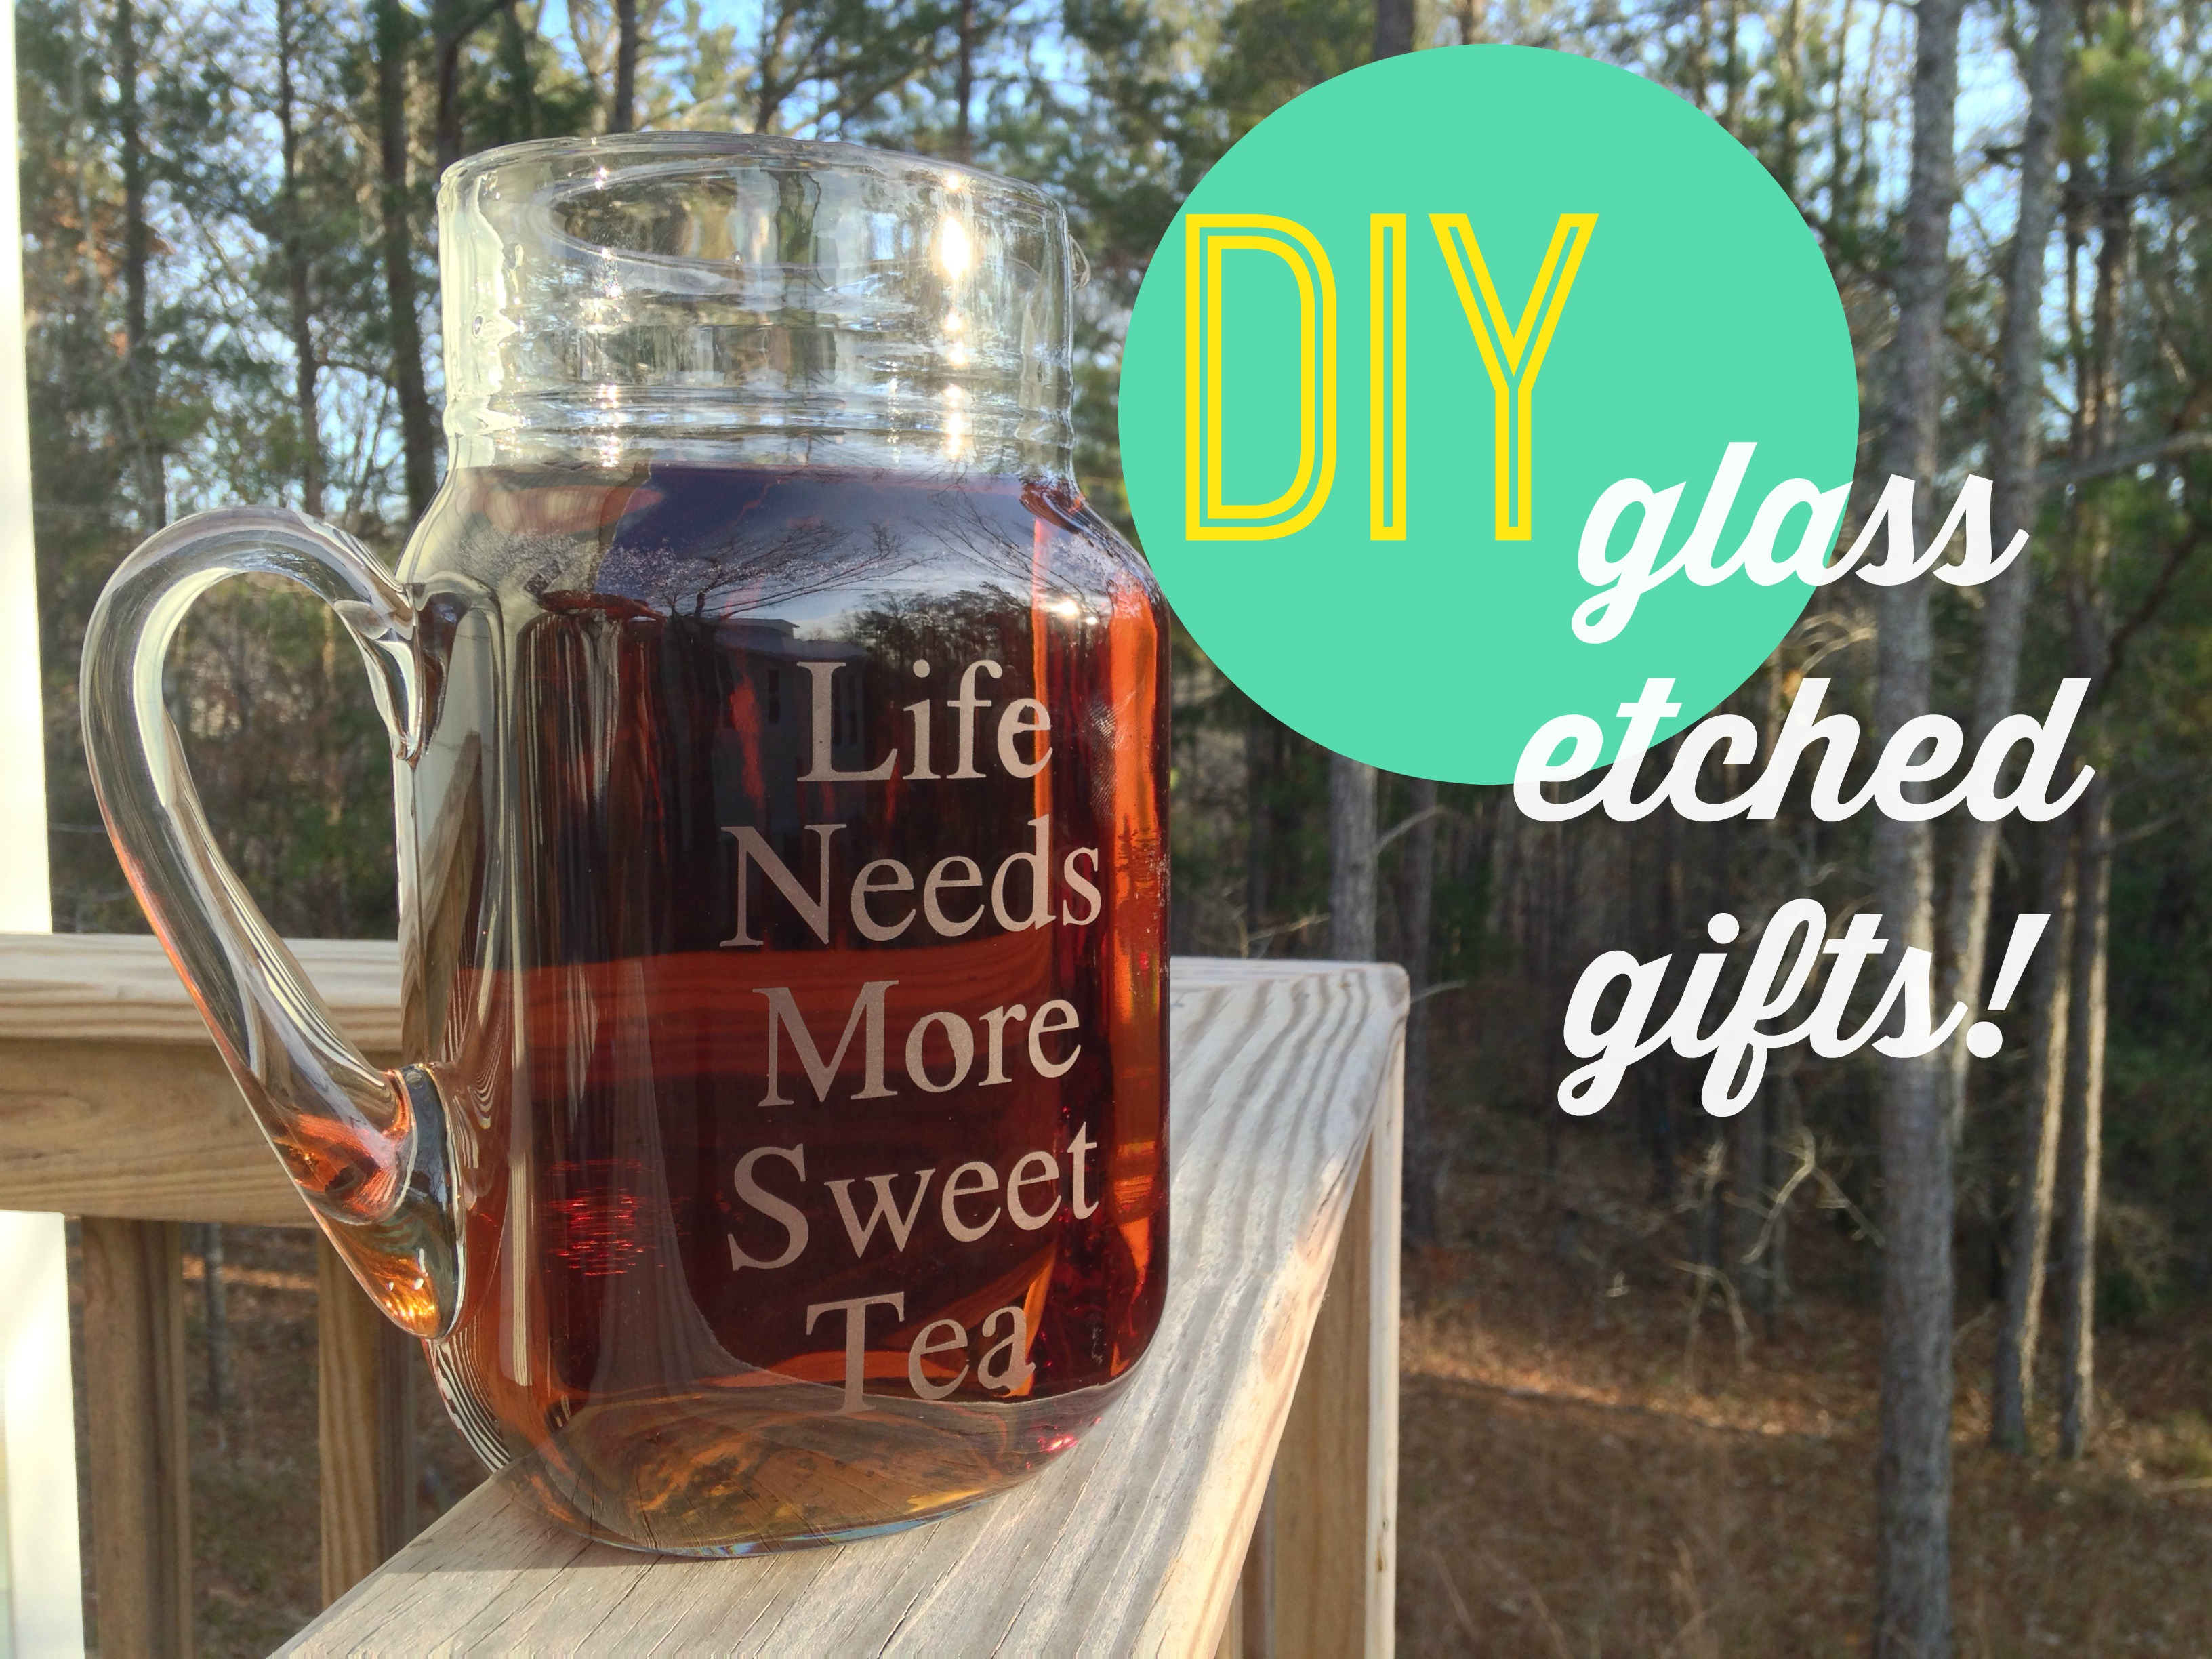 Diy Gifts Etched Glass Gifts Southern Savers